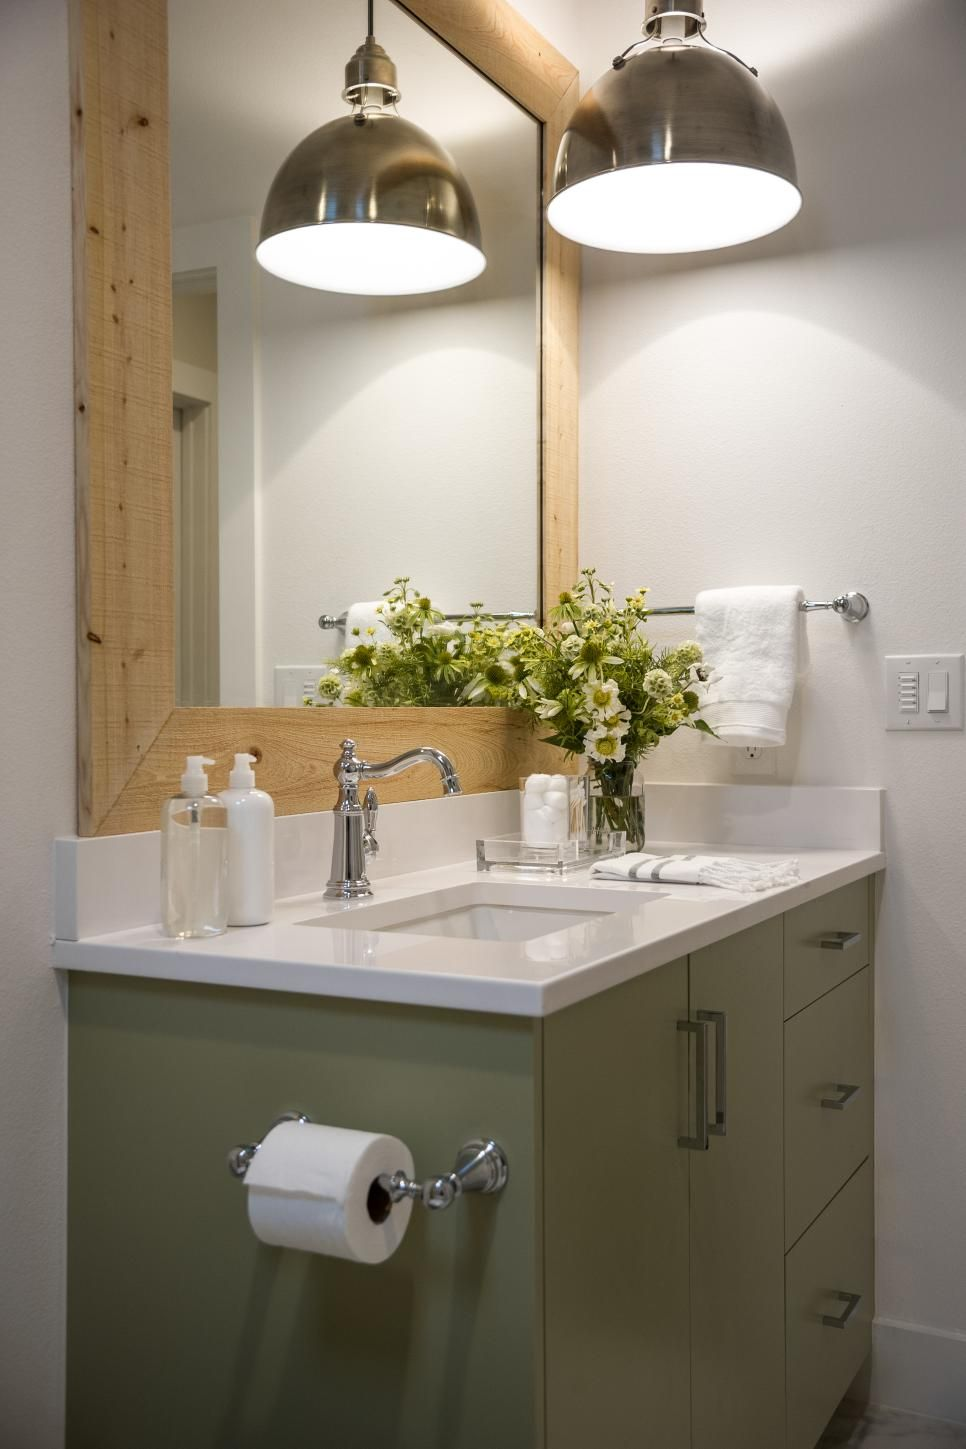 An antique nickel pendant light brightens the bathroom vanity with